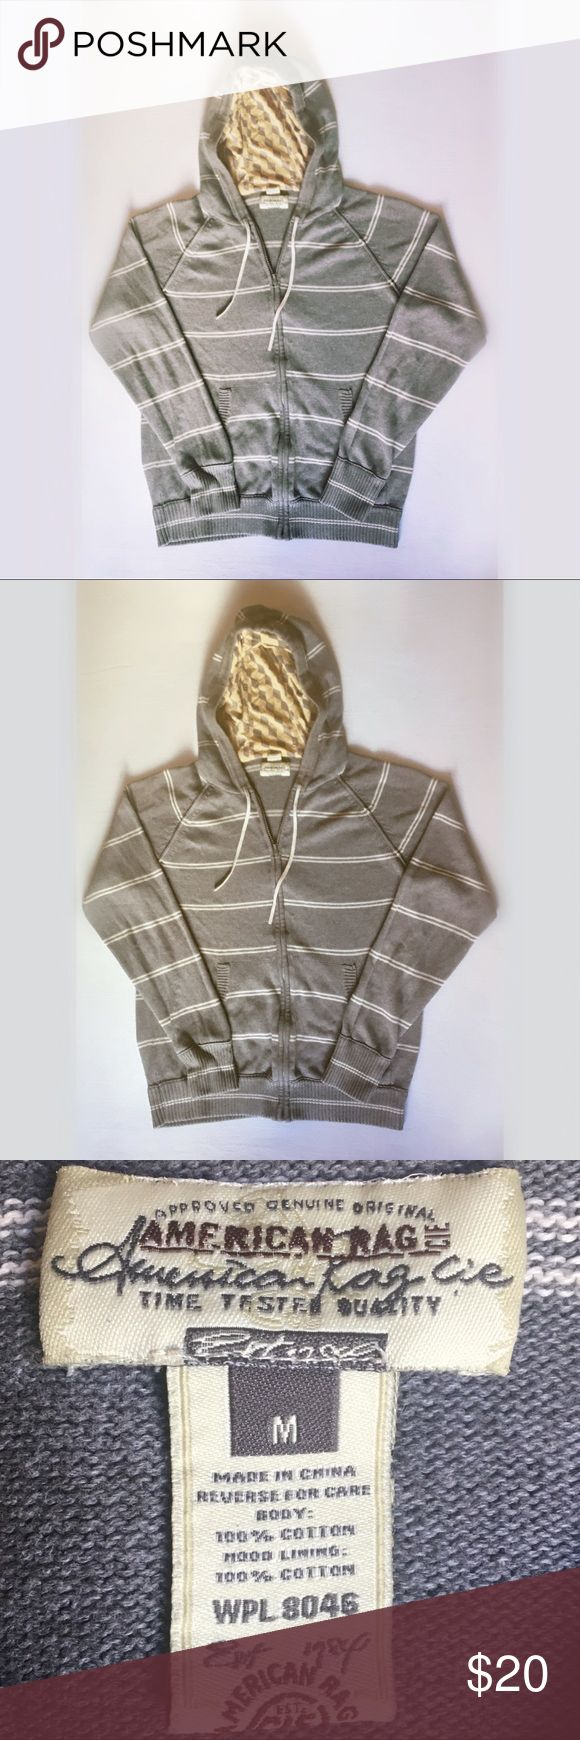 American Rag hoodie sweater American Rag hoodie sweater. Grey with cream stripes, full zip, front pockets, & lined hood. Supersoft and cozy 100% cotton. Like new condition. Size medium. American Rag Sweaters Zip Up